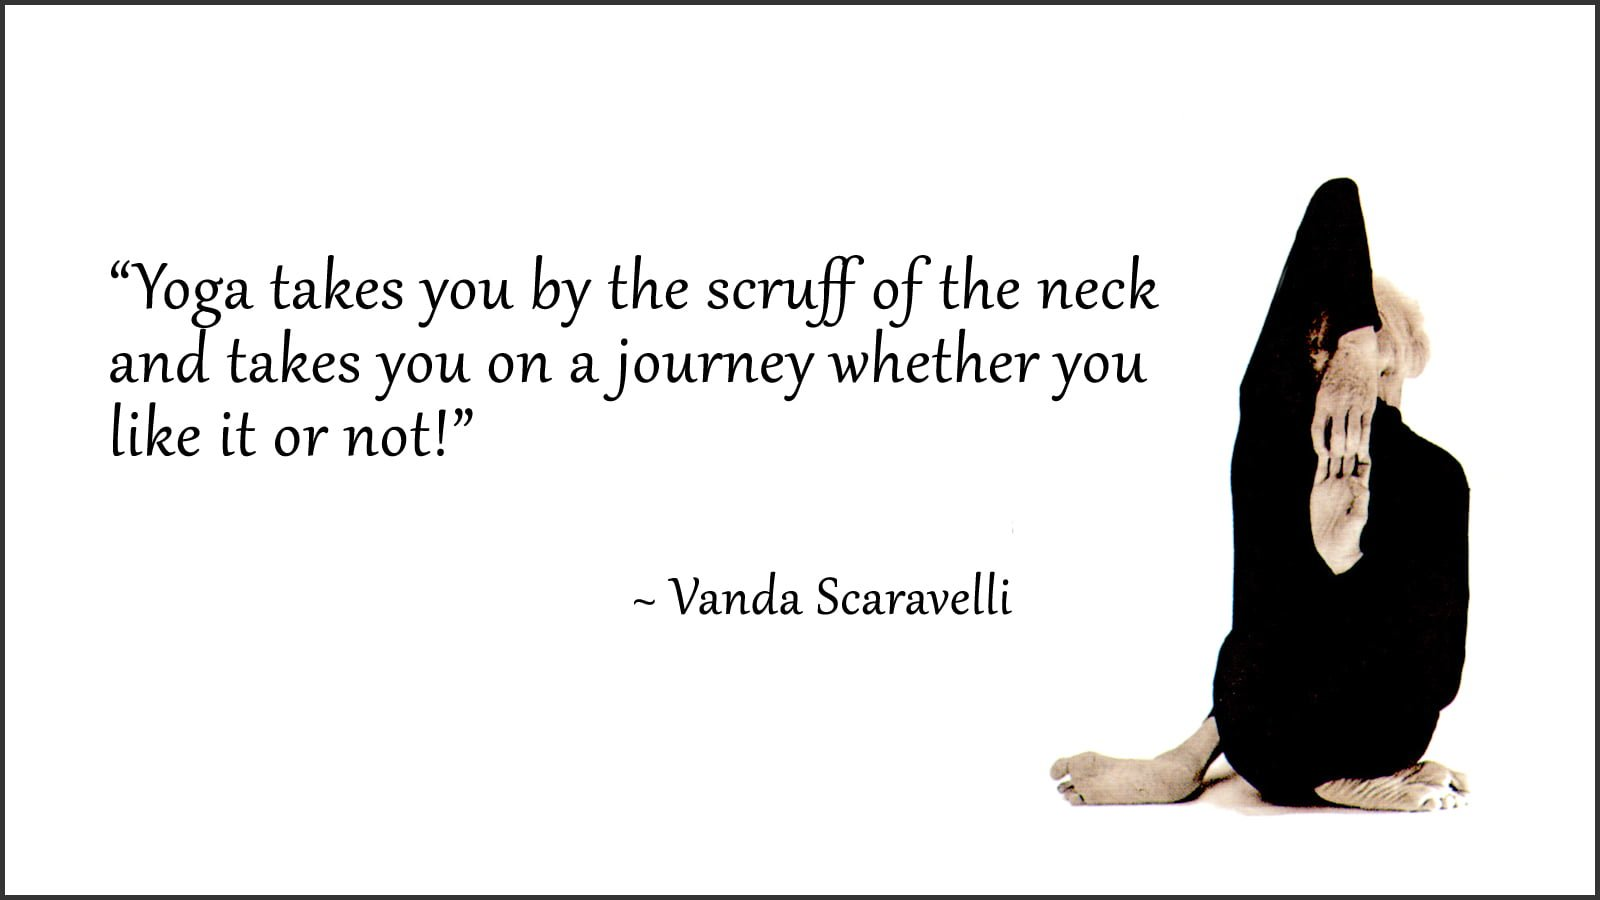 Vanda-Scaravelli-Quote-Yoga-by-Scruff-of-neck.jpg